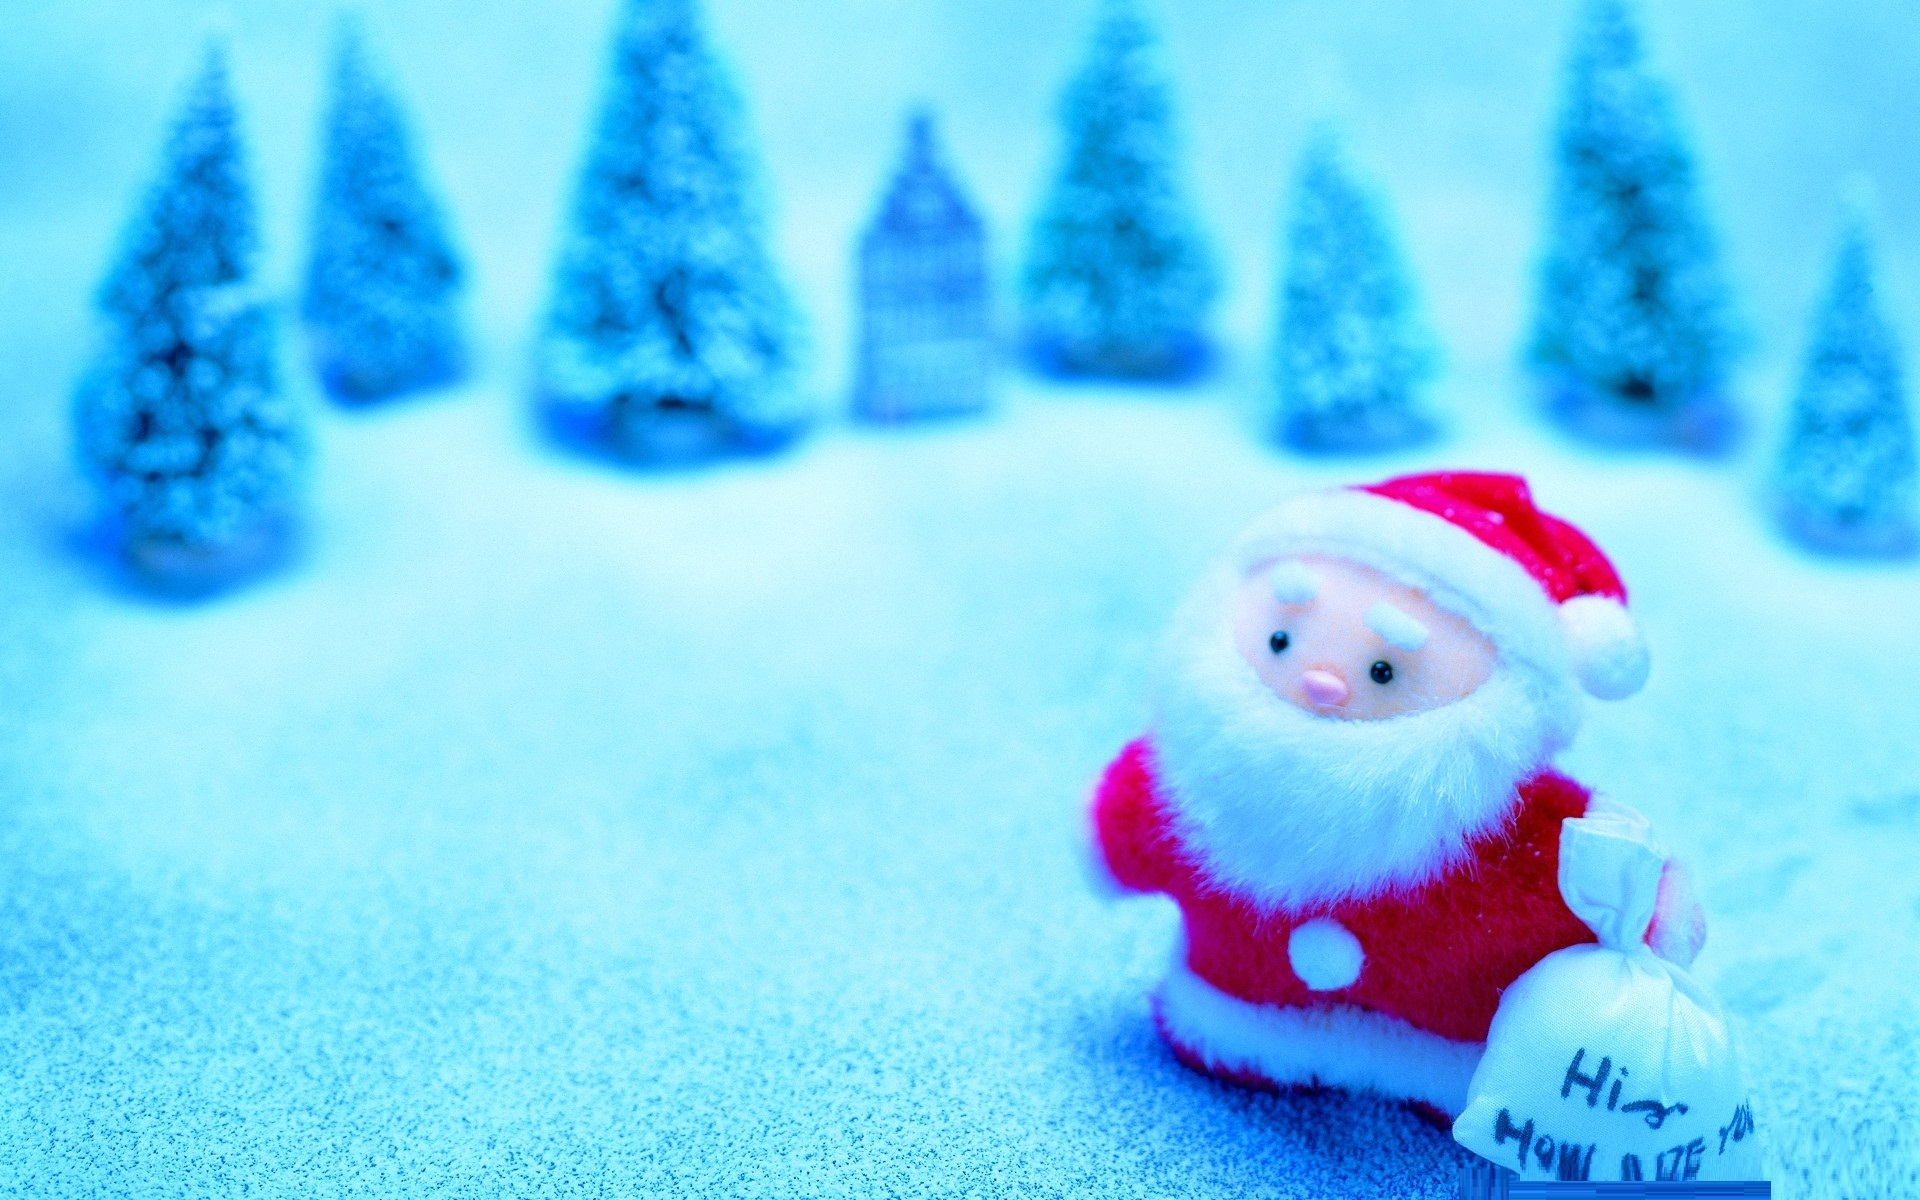 Cute Christmas Backgrounds Cute Christmas Desktop Backgrounds 1920x1200